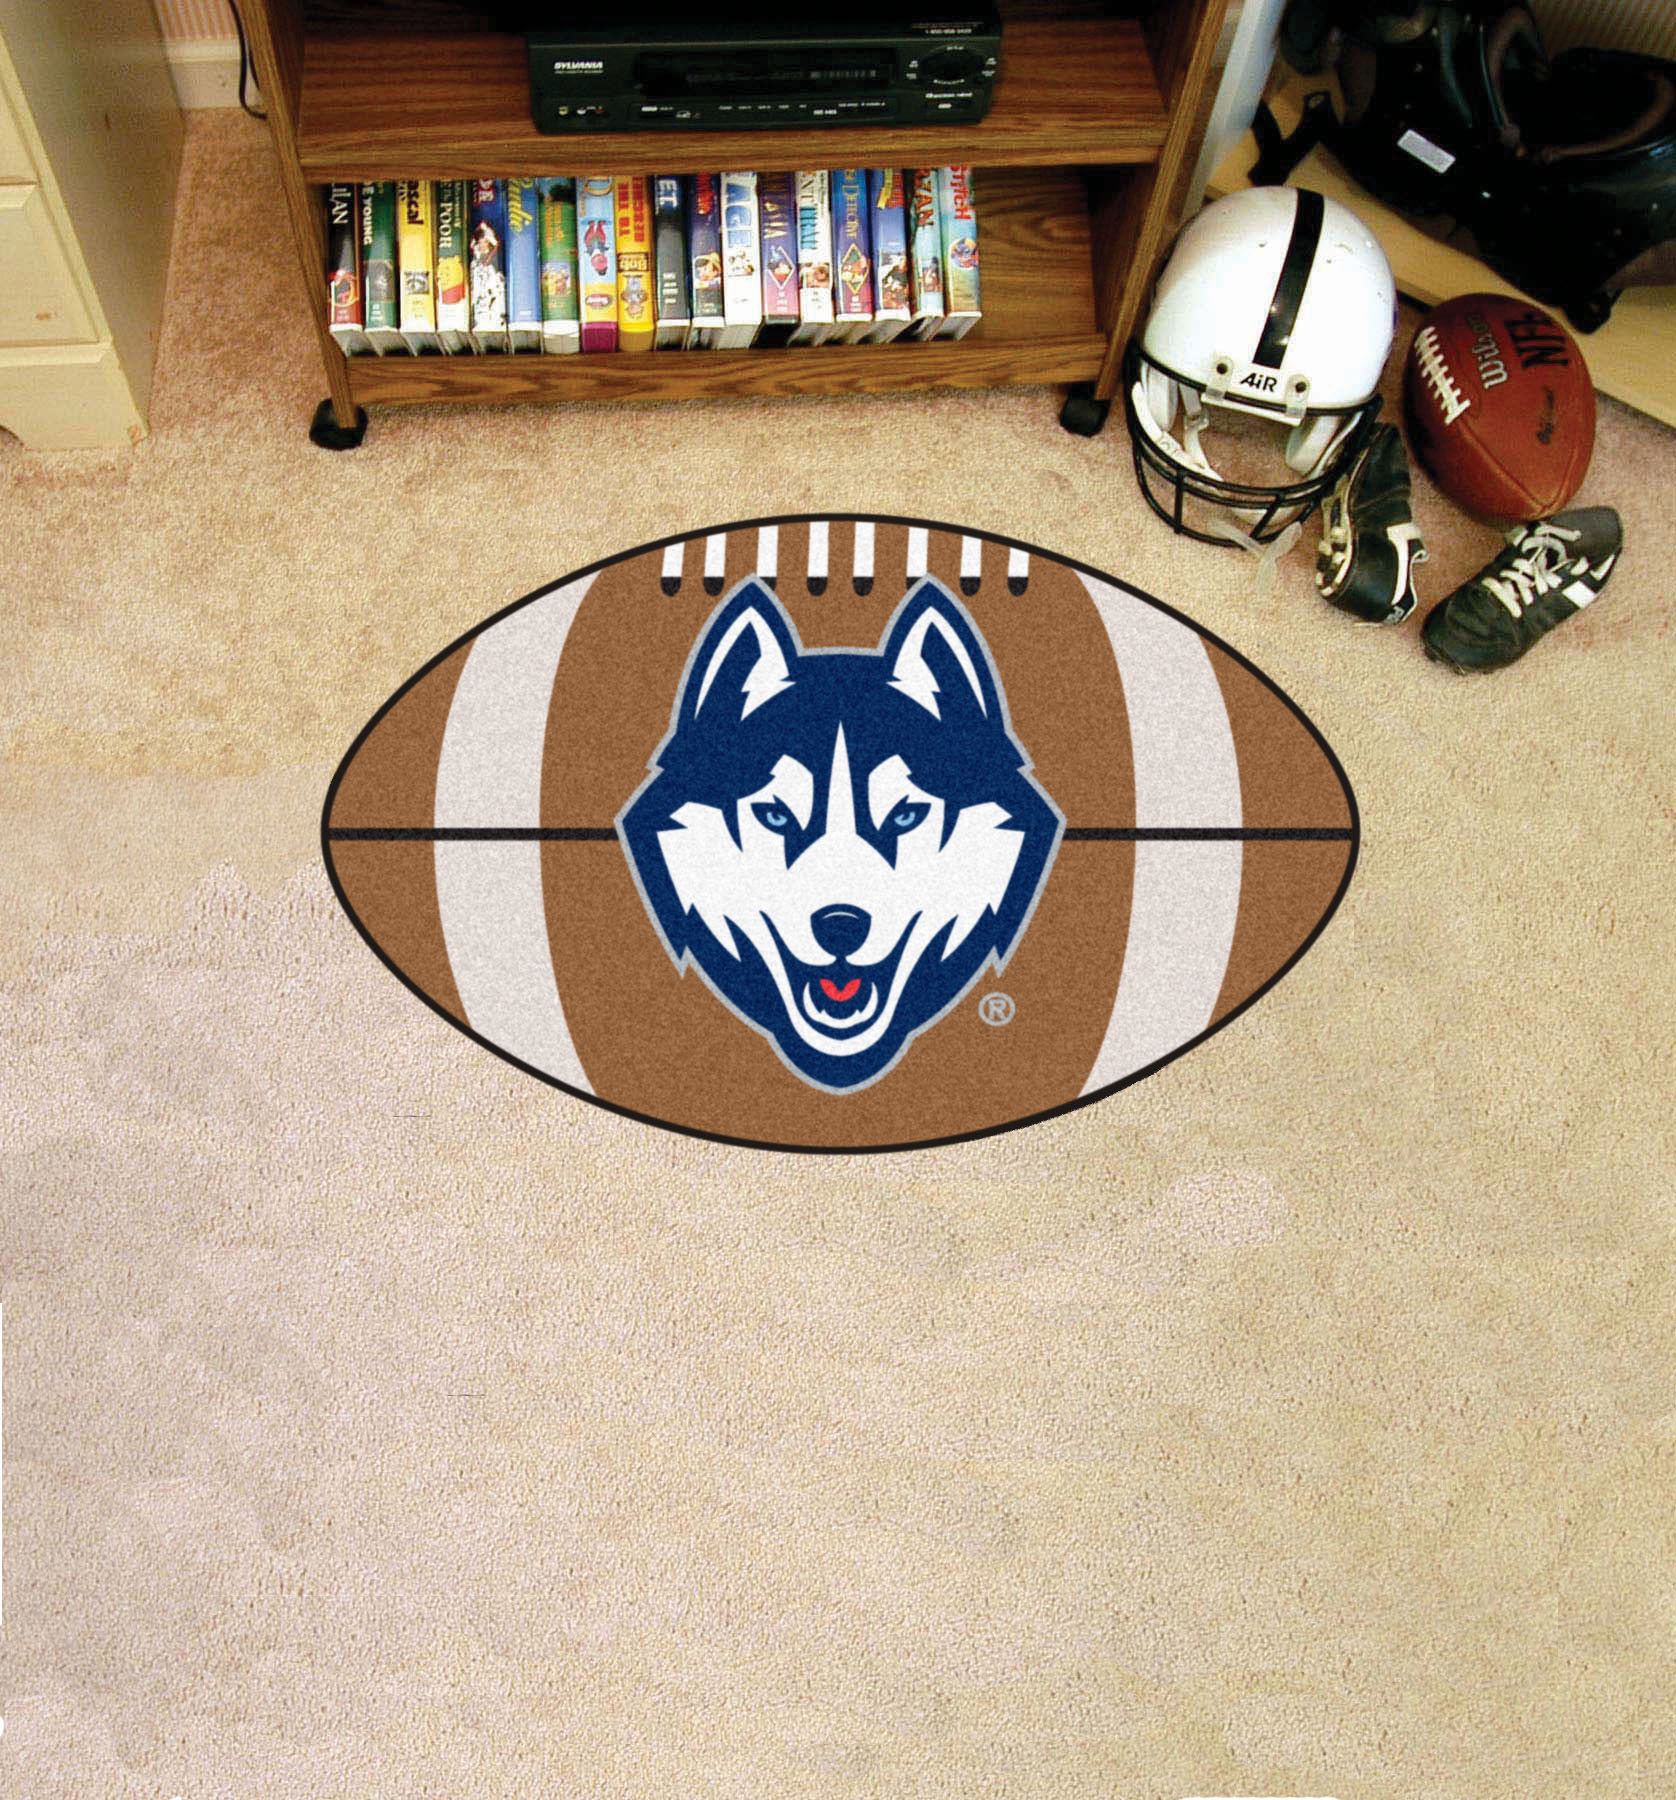 University Of Connecticut Ball Shaped Area Rugs (Ball Shaped Area Rugs:  Football)